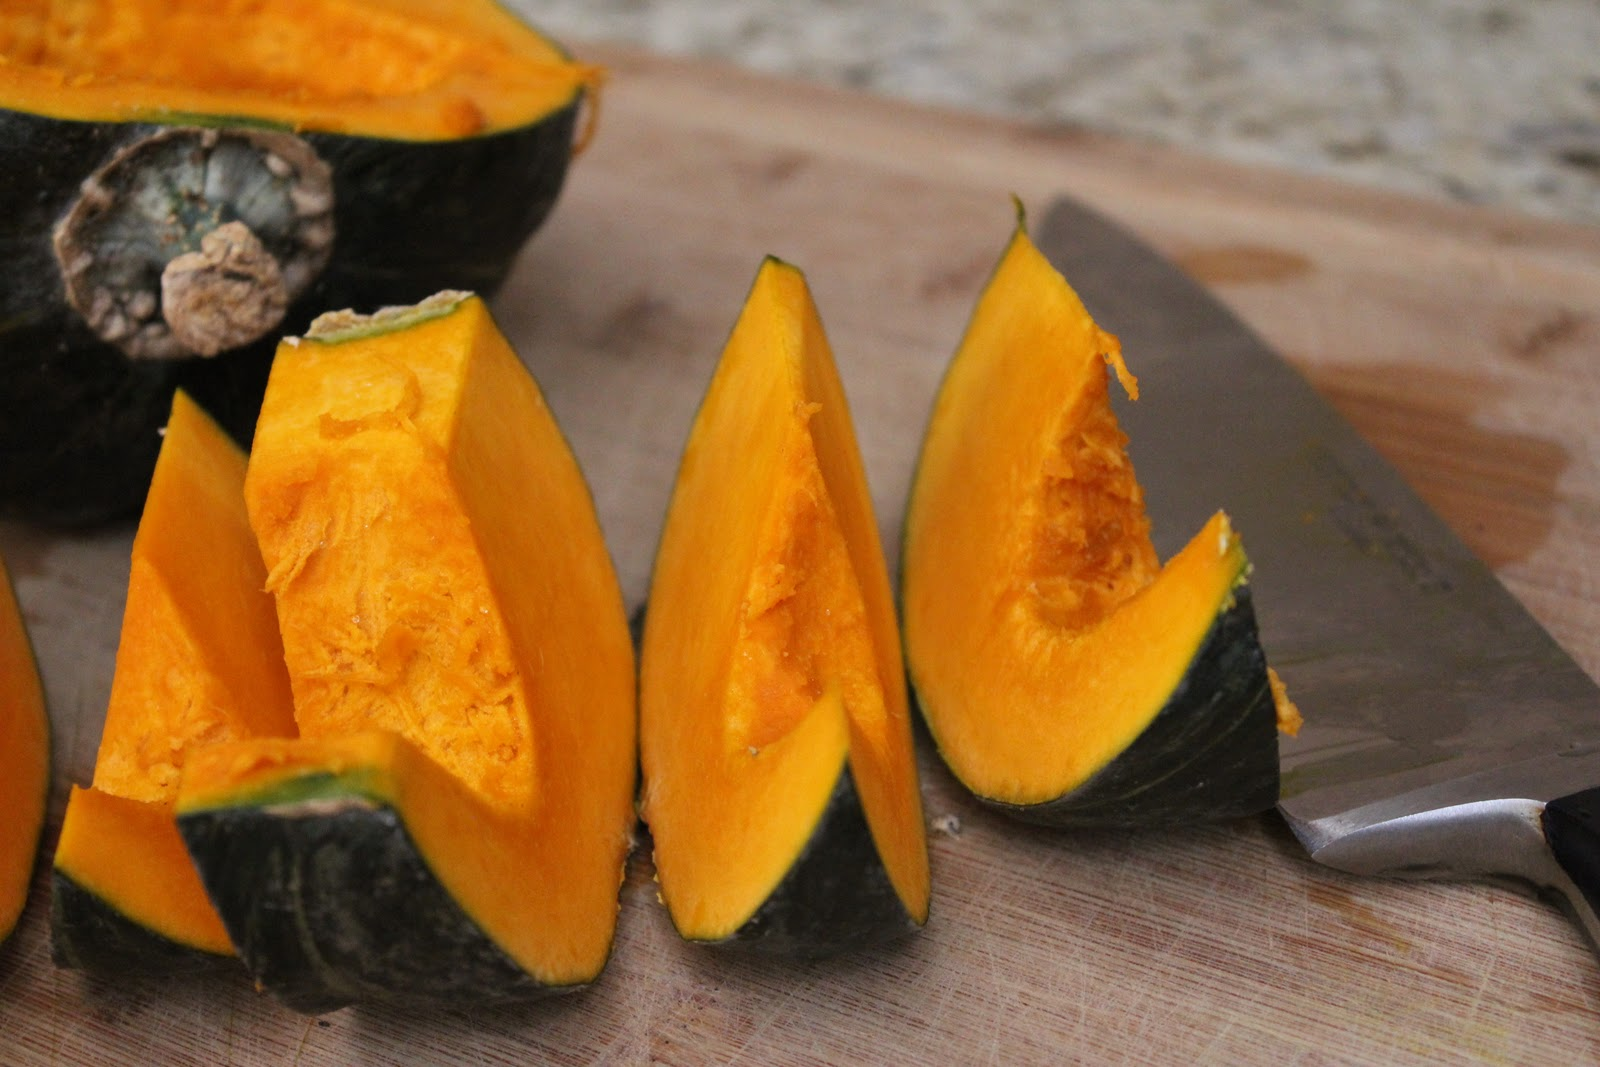 Cut squash into wedges to make peeling easier